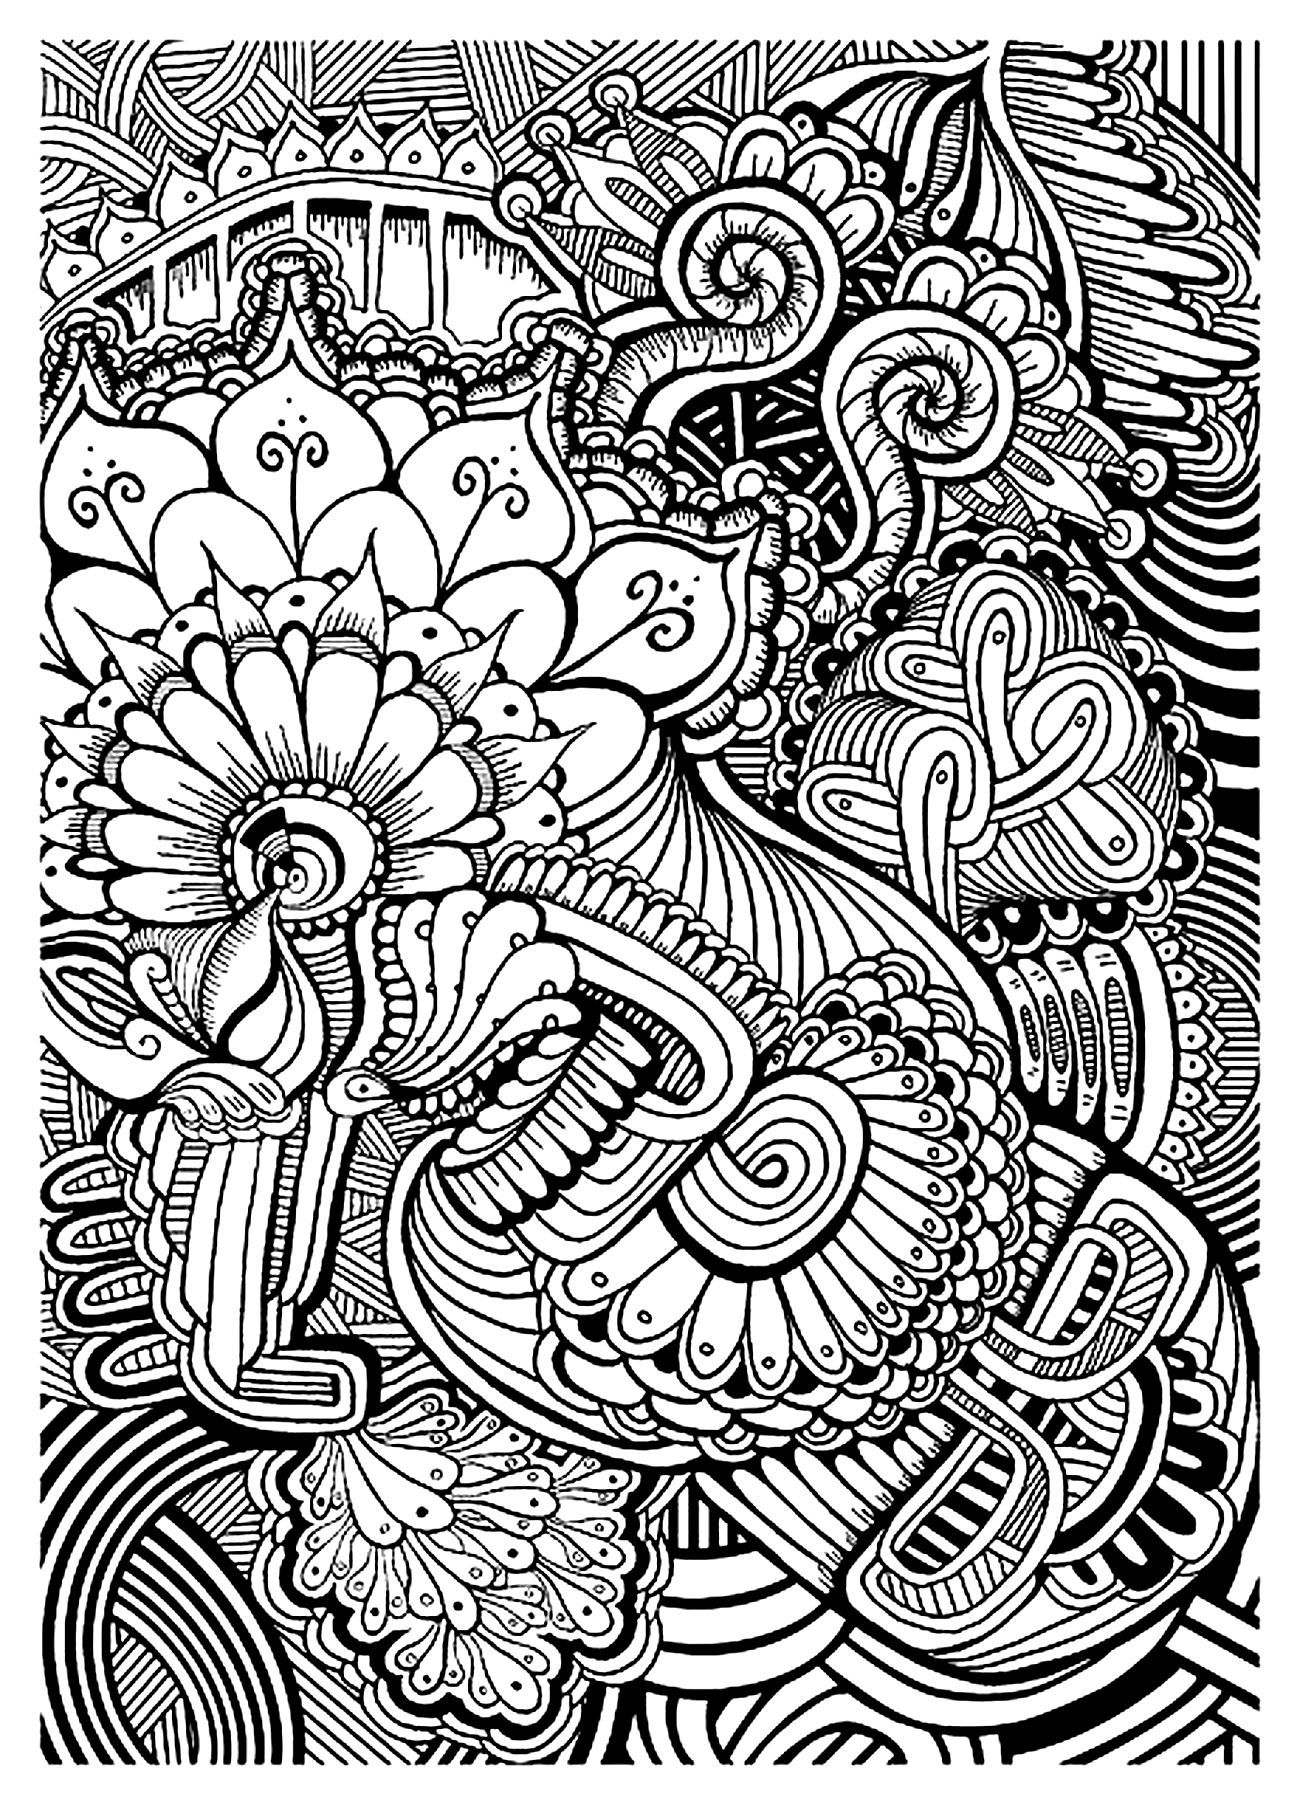 Free Coloring Page Adult Zen Anti Stress Relax To Print